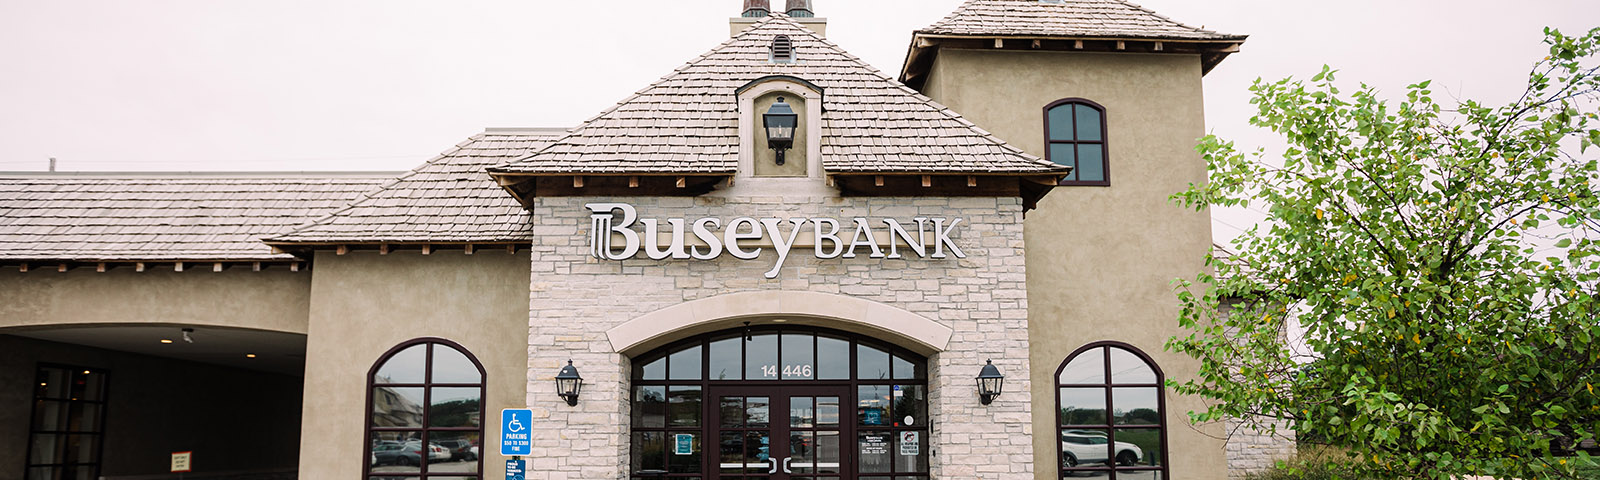 Busey Bank Ballwin location